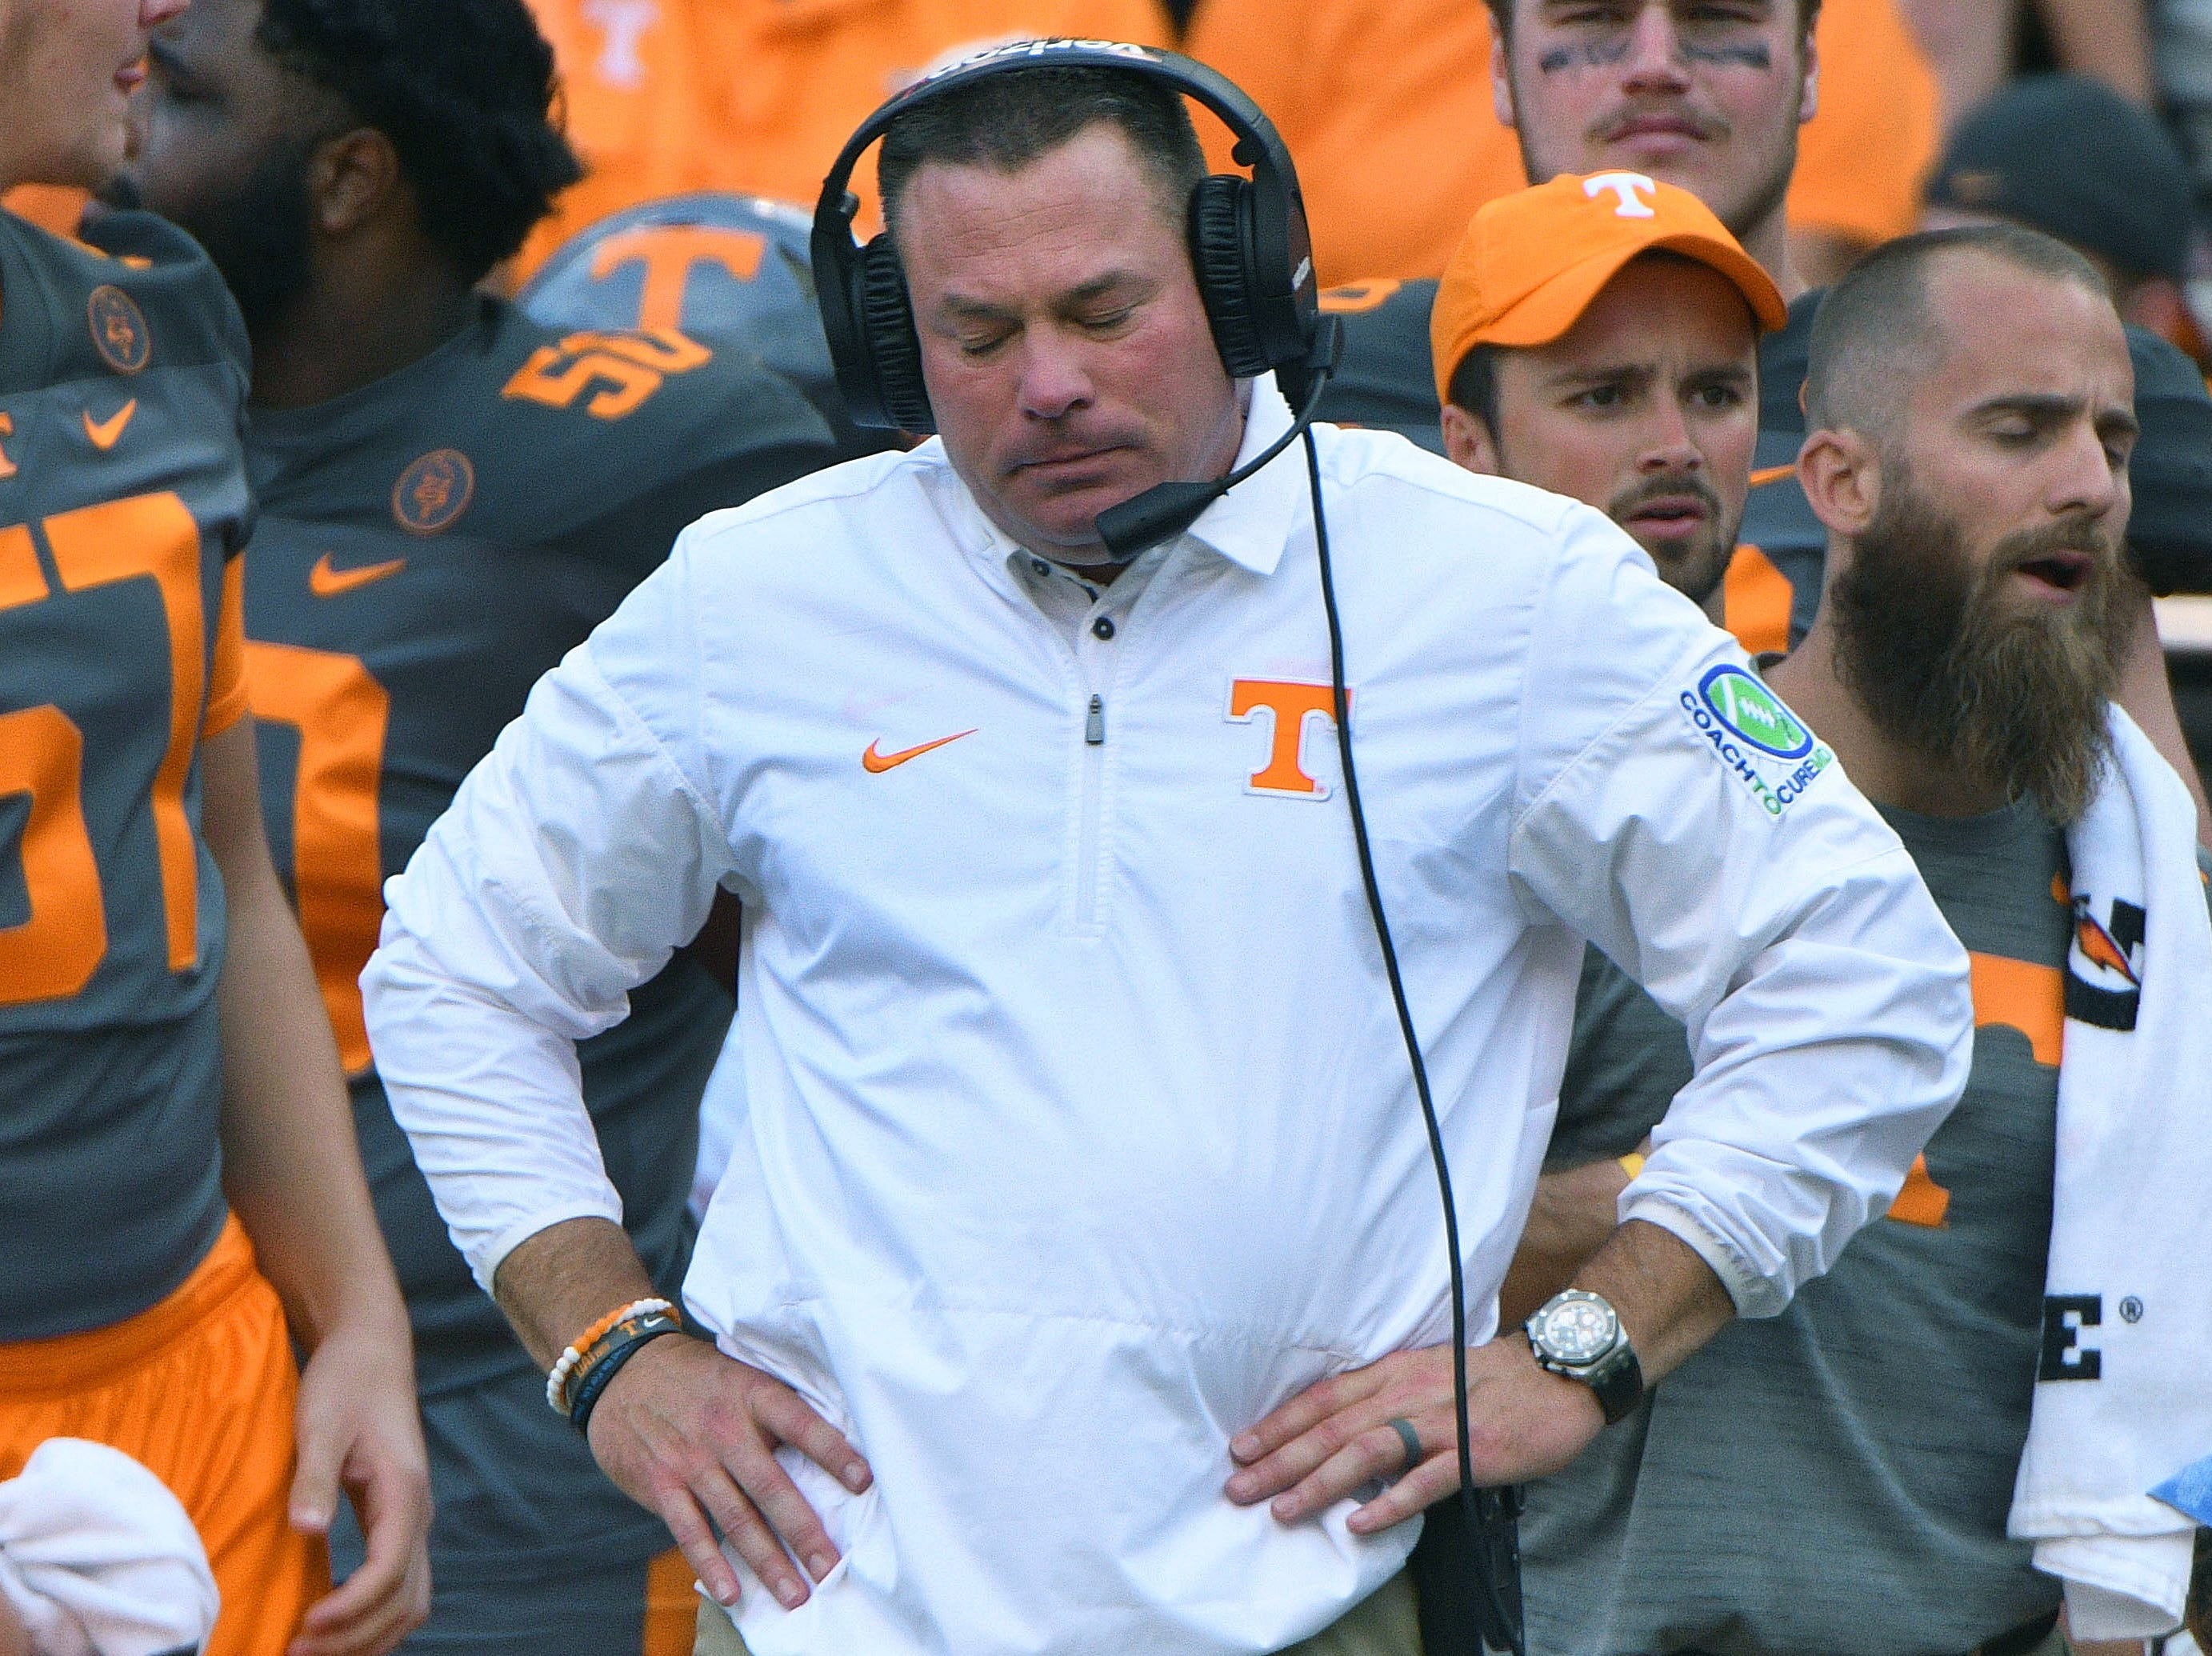 Tennessee Head Coach Butch Jones reacts during the game during the Tennessee Volunteers vs. Georgia Bulldogs game at Neyland Stadium in Knoxville, Tennessee on Saturday, September 30, 2017.